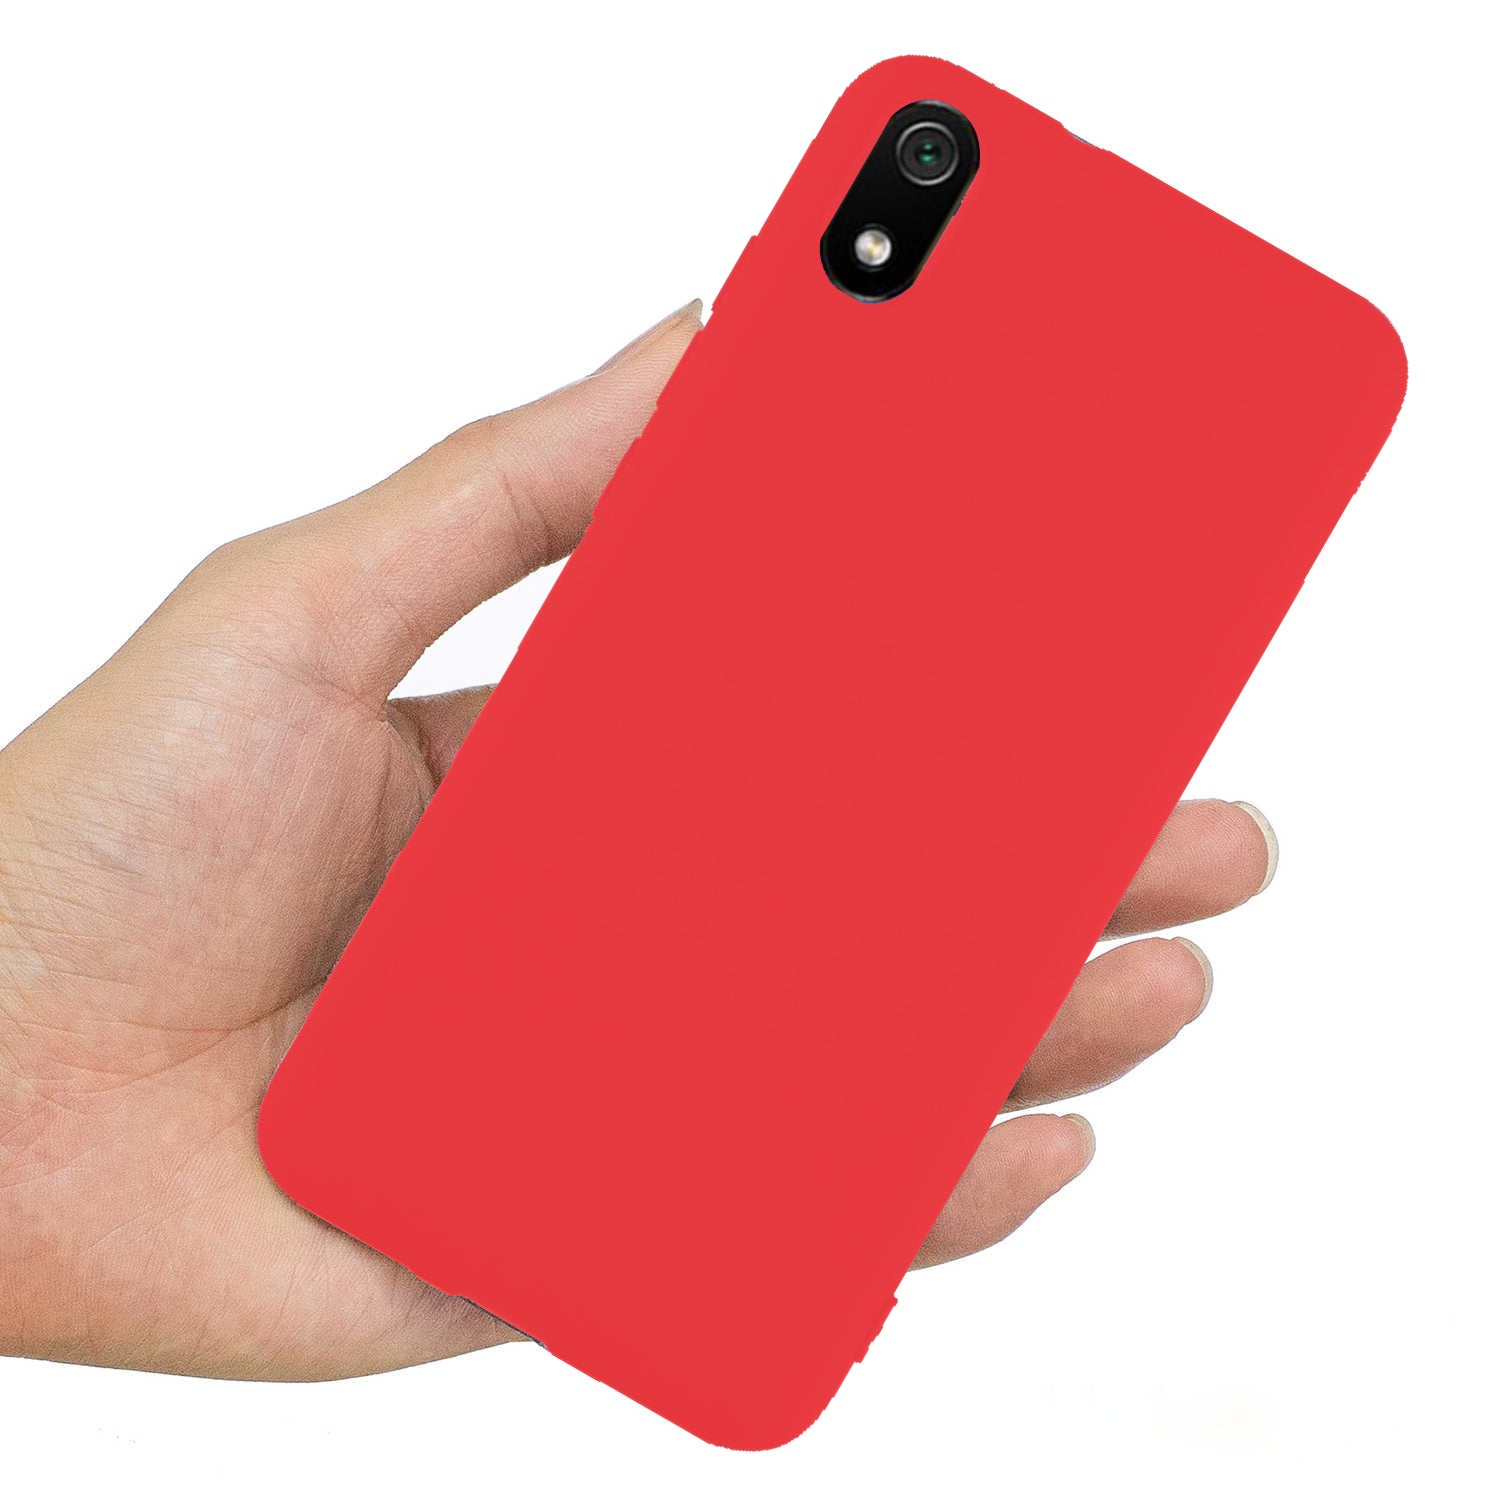 Ceego Back Cover for Xiaomi Redmi 7A - Thin Flexible Redmi 7A Case (Cherry Red)